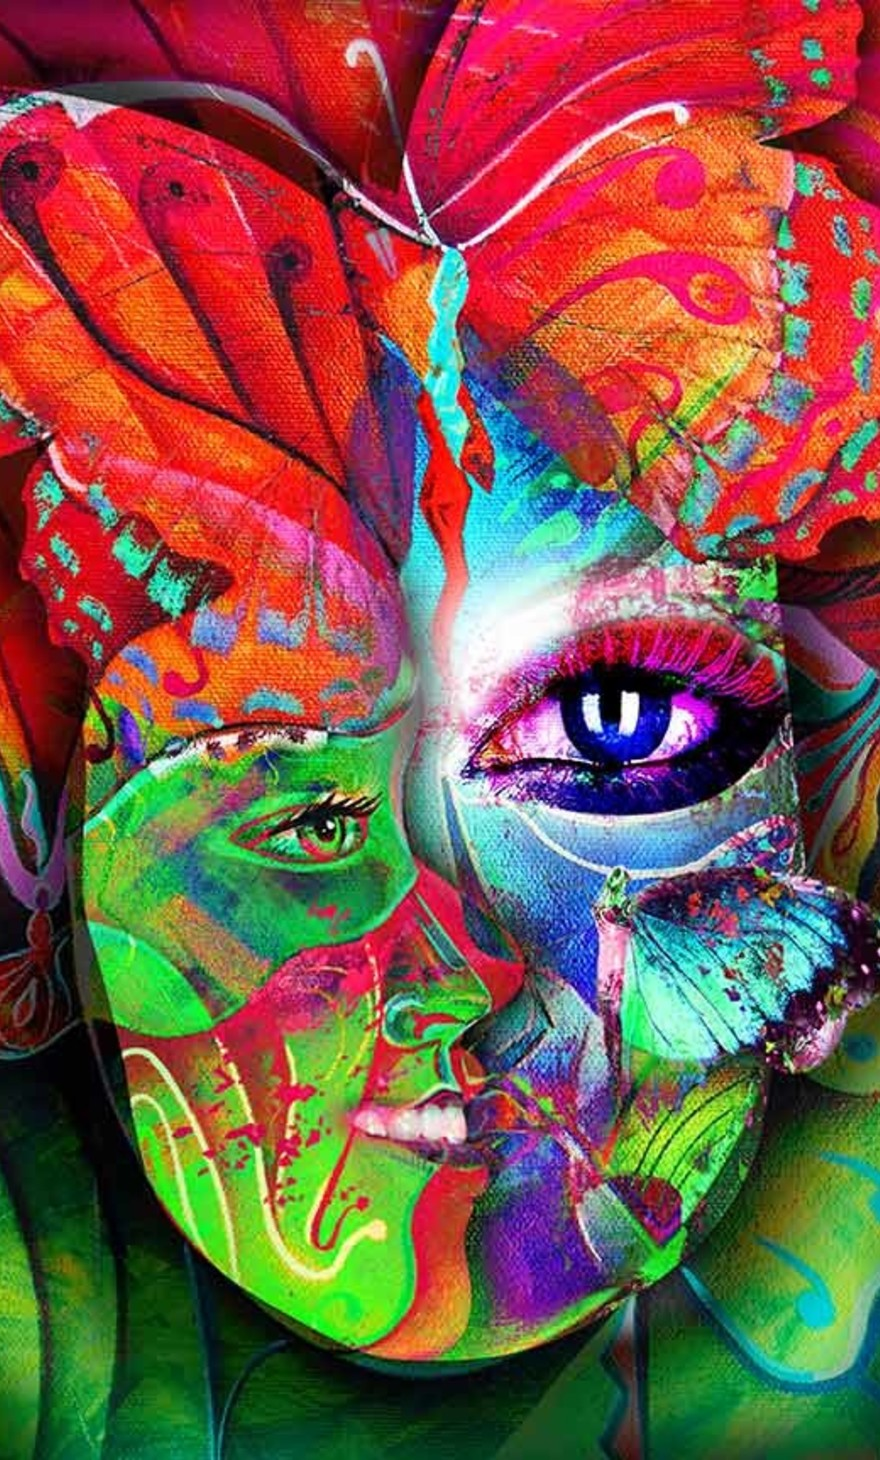 Multiple colorful faces